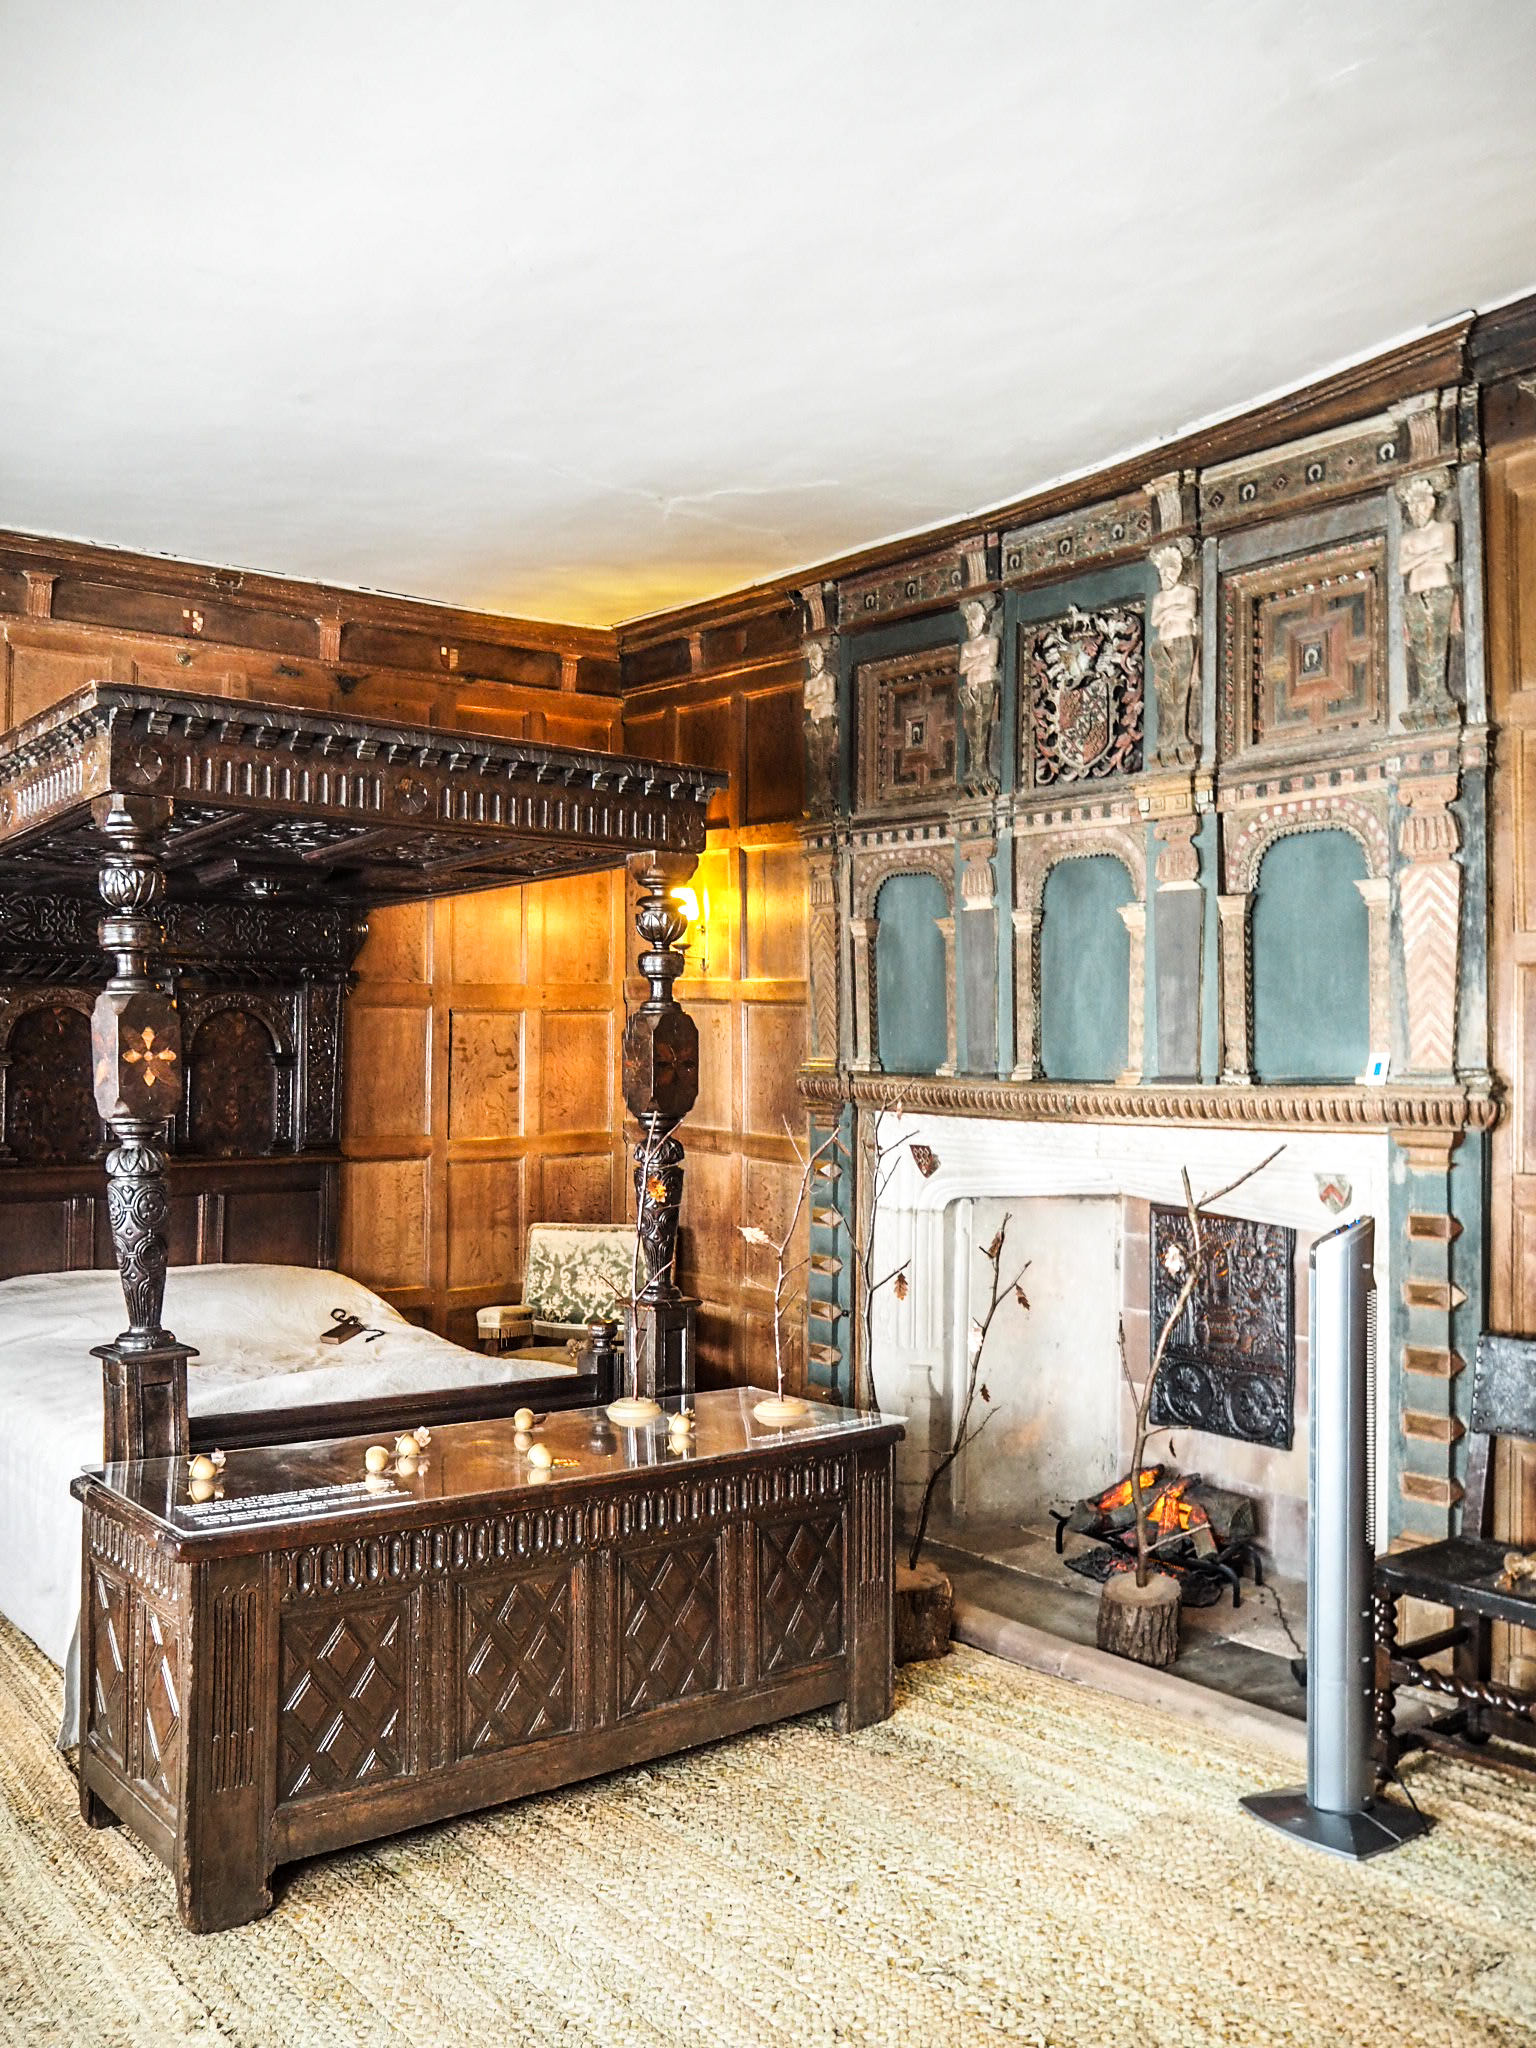 Baddesley Clinton bedroom